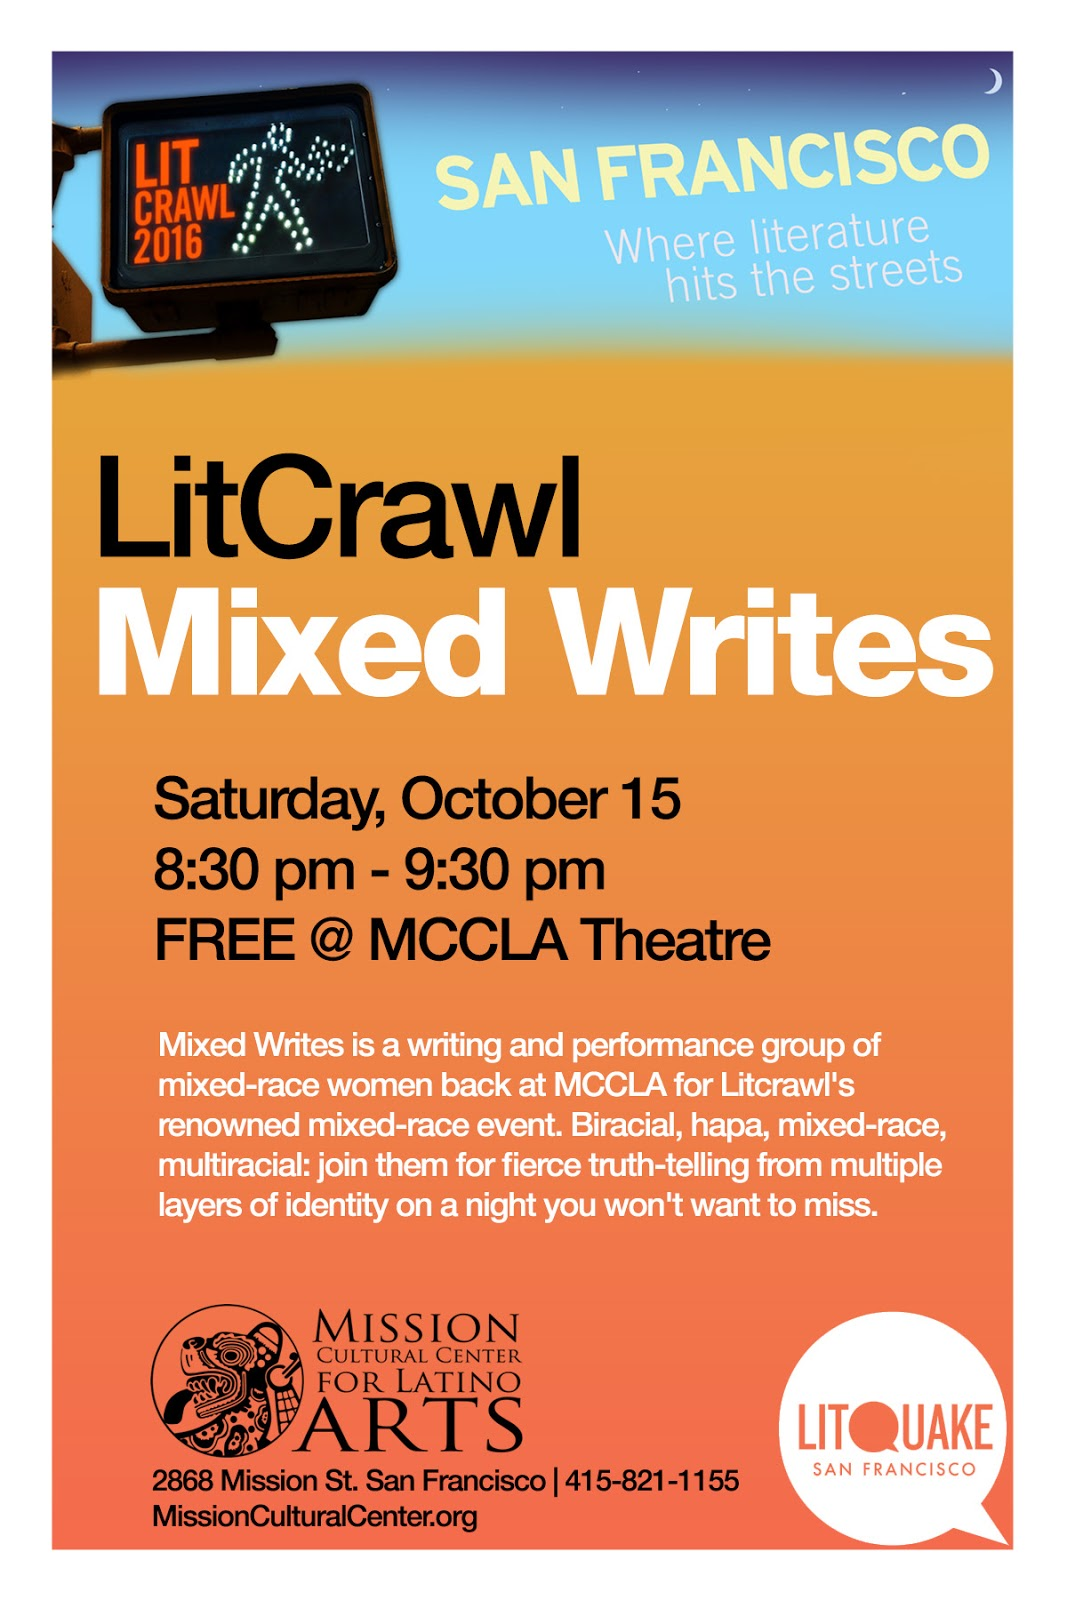 LitCrawl Mixed Writes